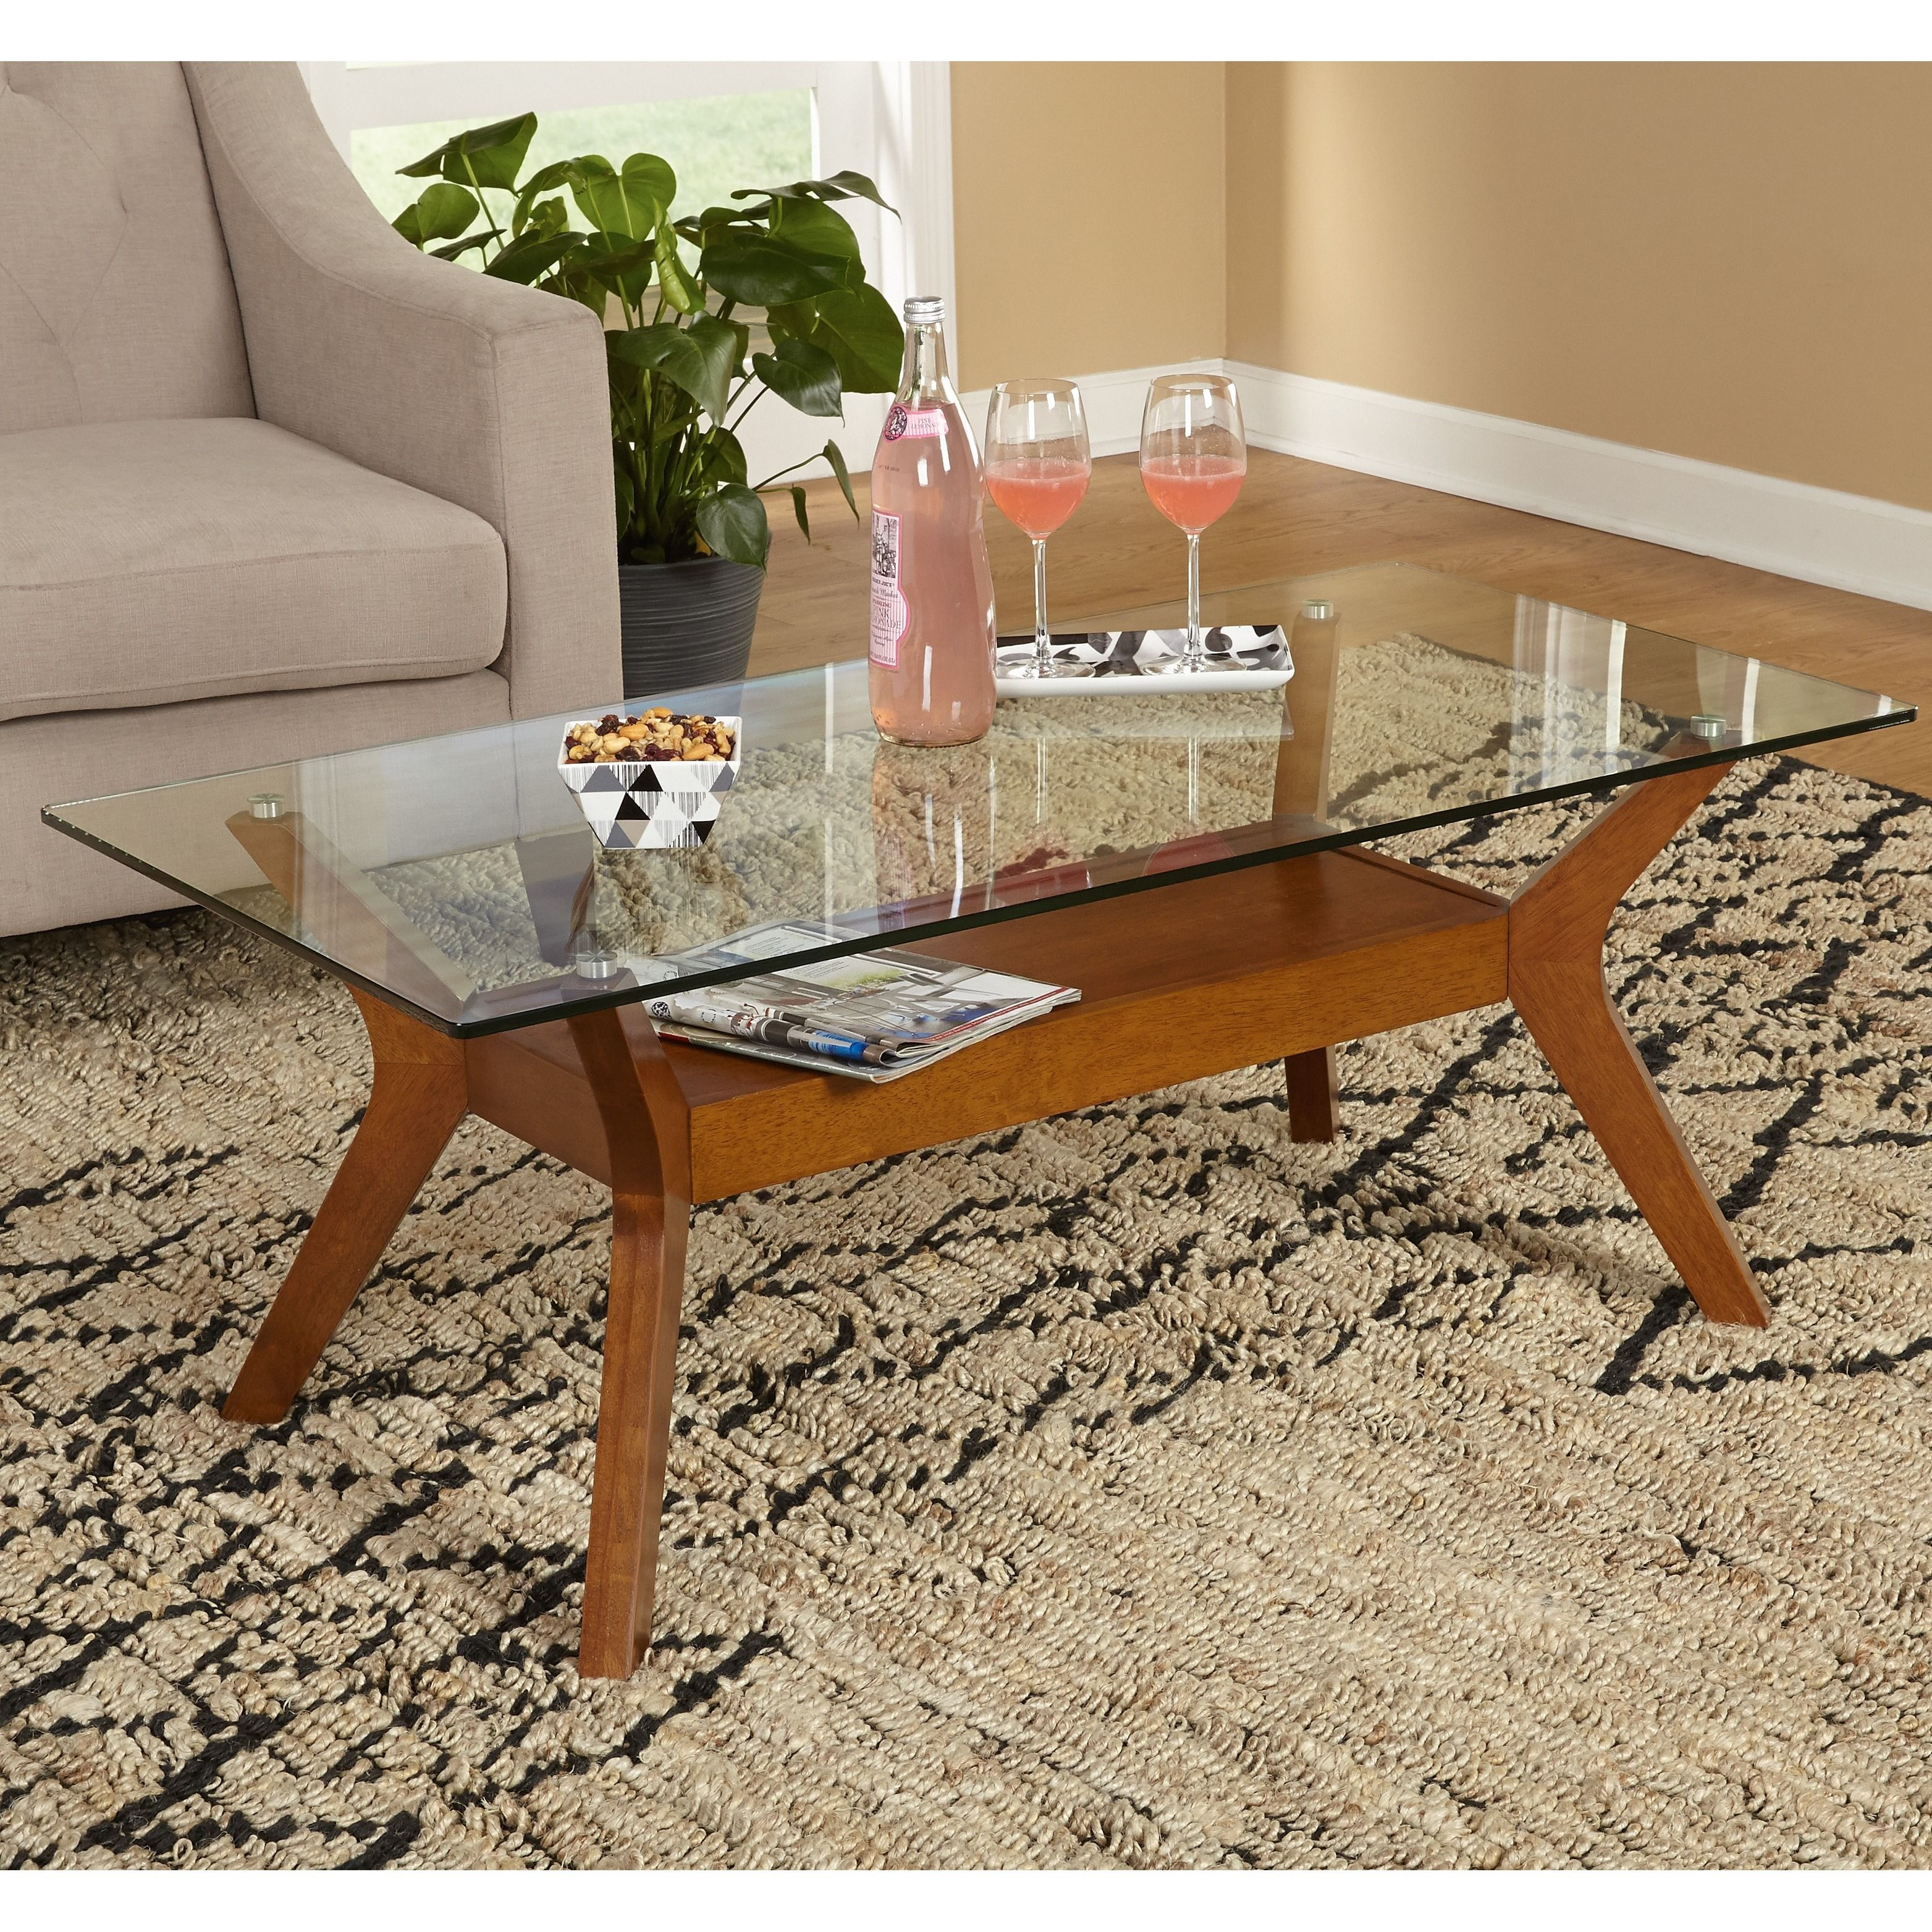 Overstock Com Online Shopping Bedding Furniture Electronics Jewelry Clothing More Modern Glass Coffee Table Glass Top Coffee Table Victorian Coffee Tables [ 3127 x 3127 Pixel ]